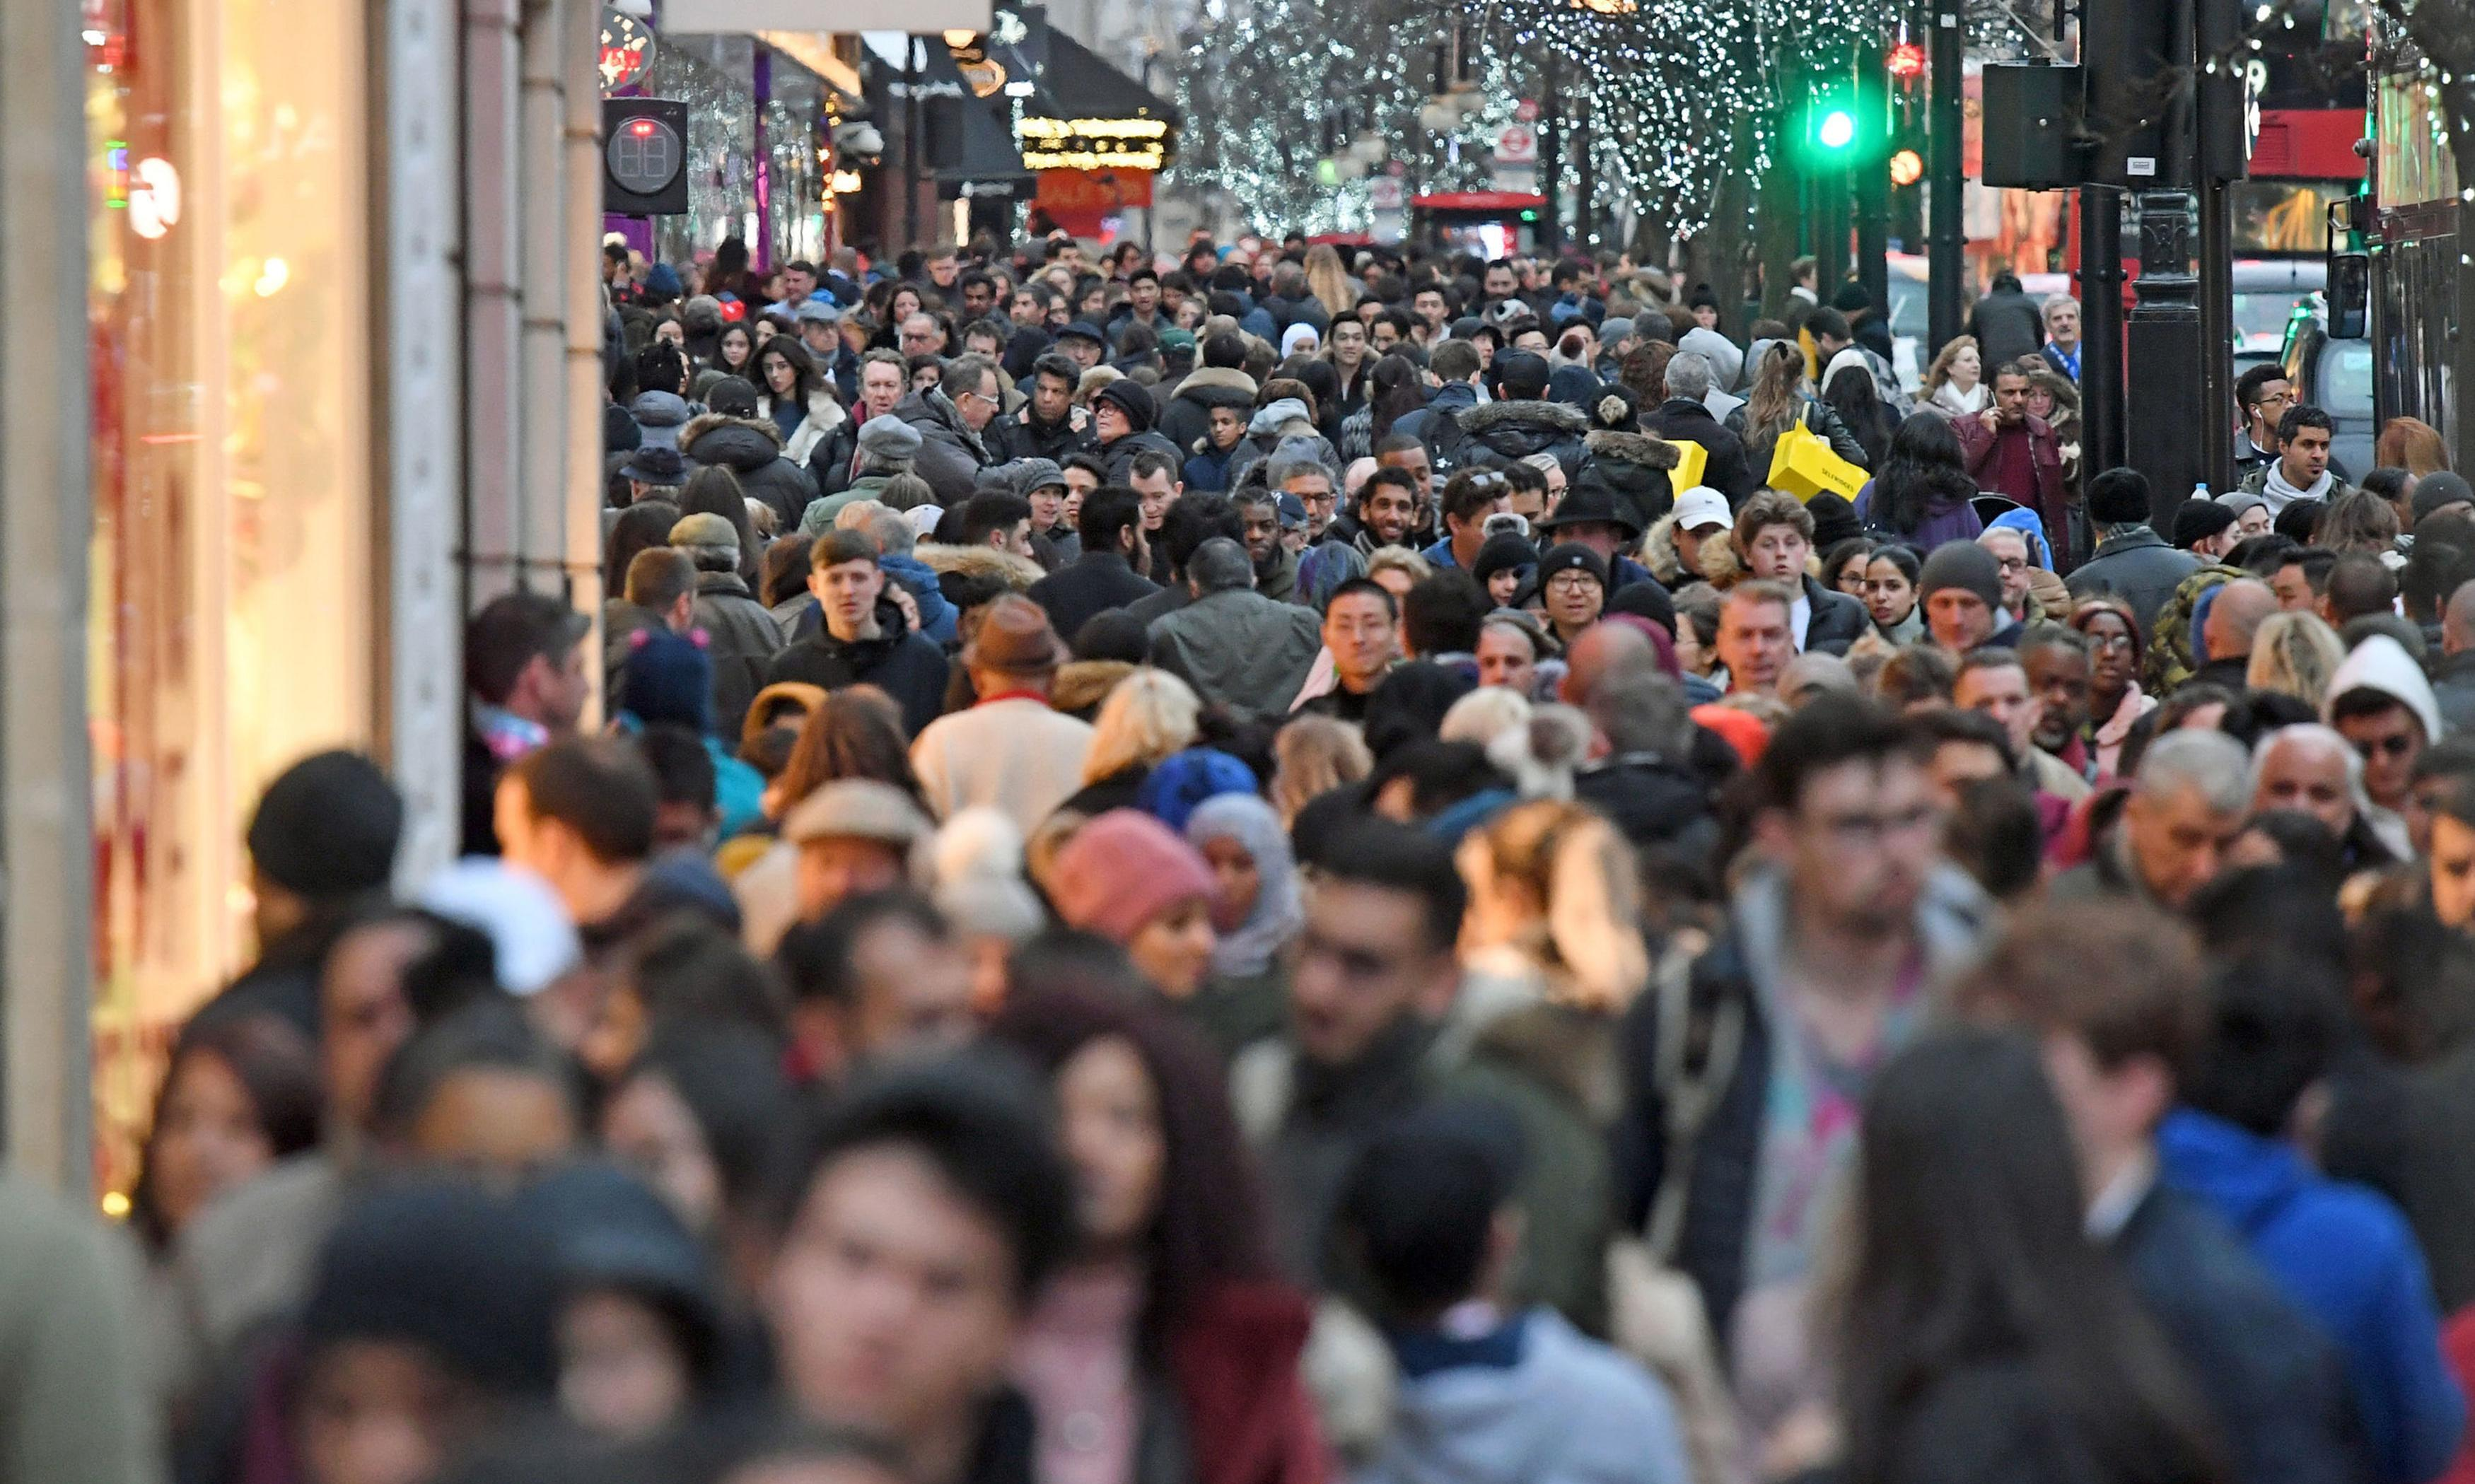 Most shoppers say Brexit has not affected spending habits